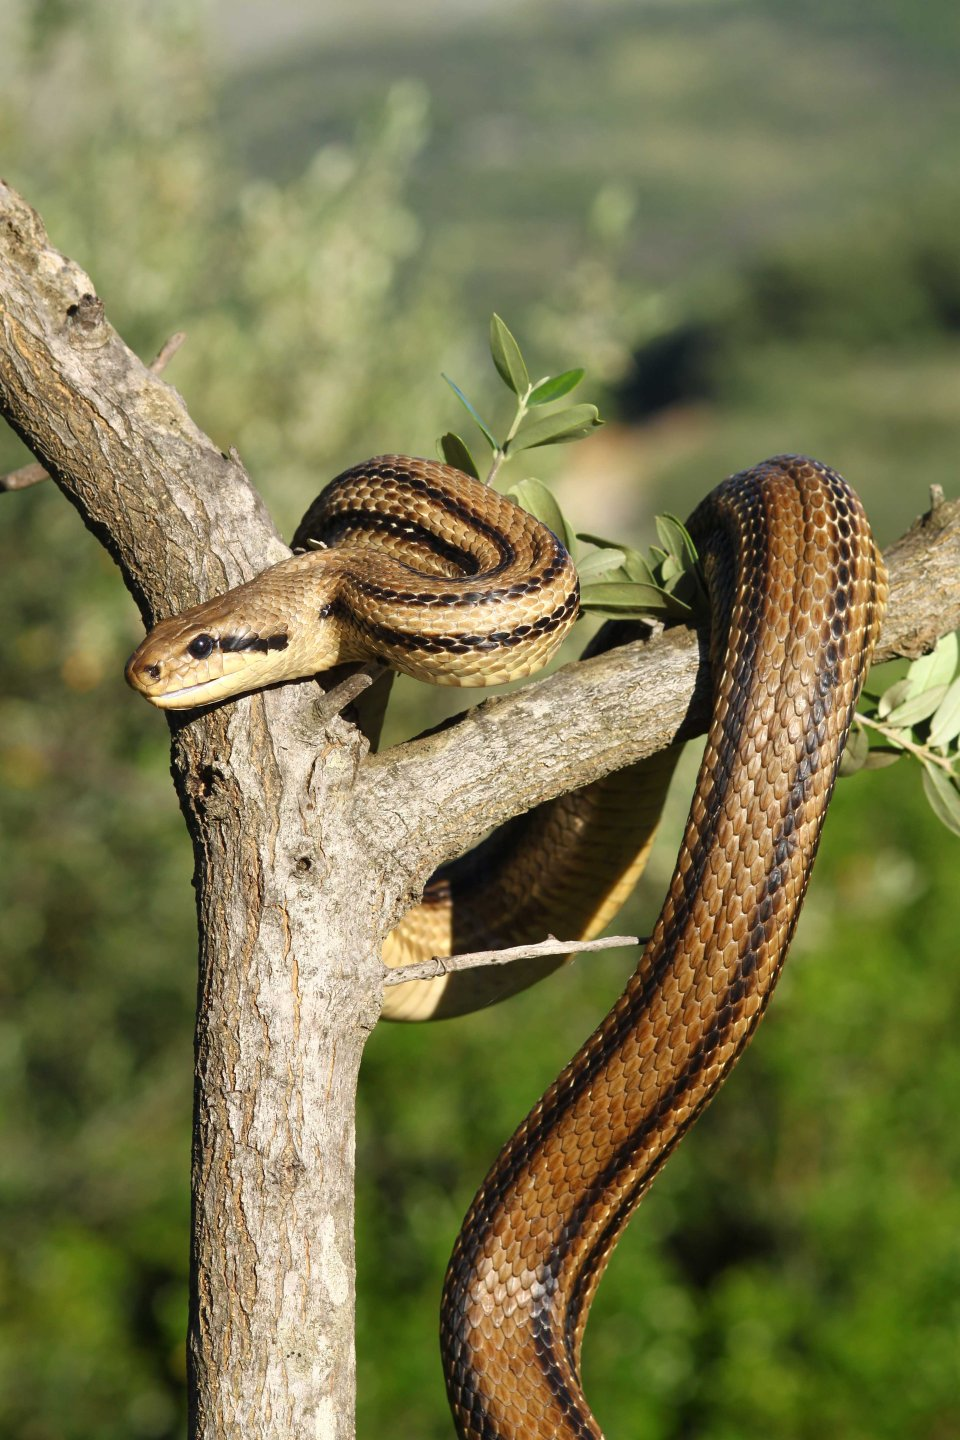 Another Four-lined snake (Elaphe quatuorlineata)